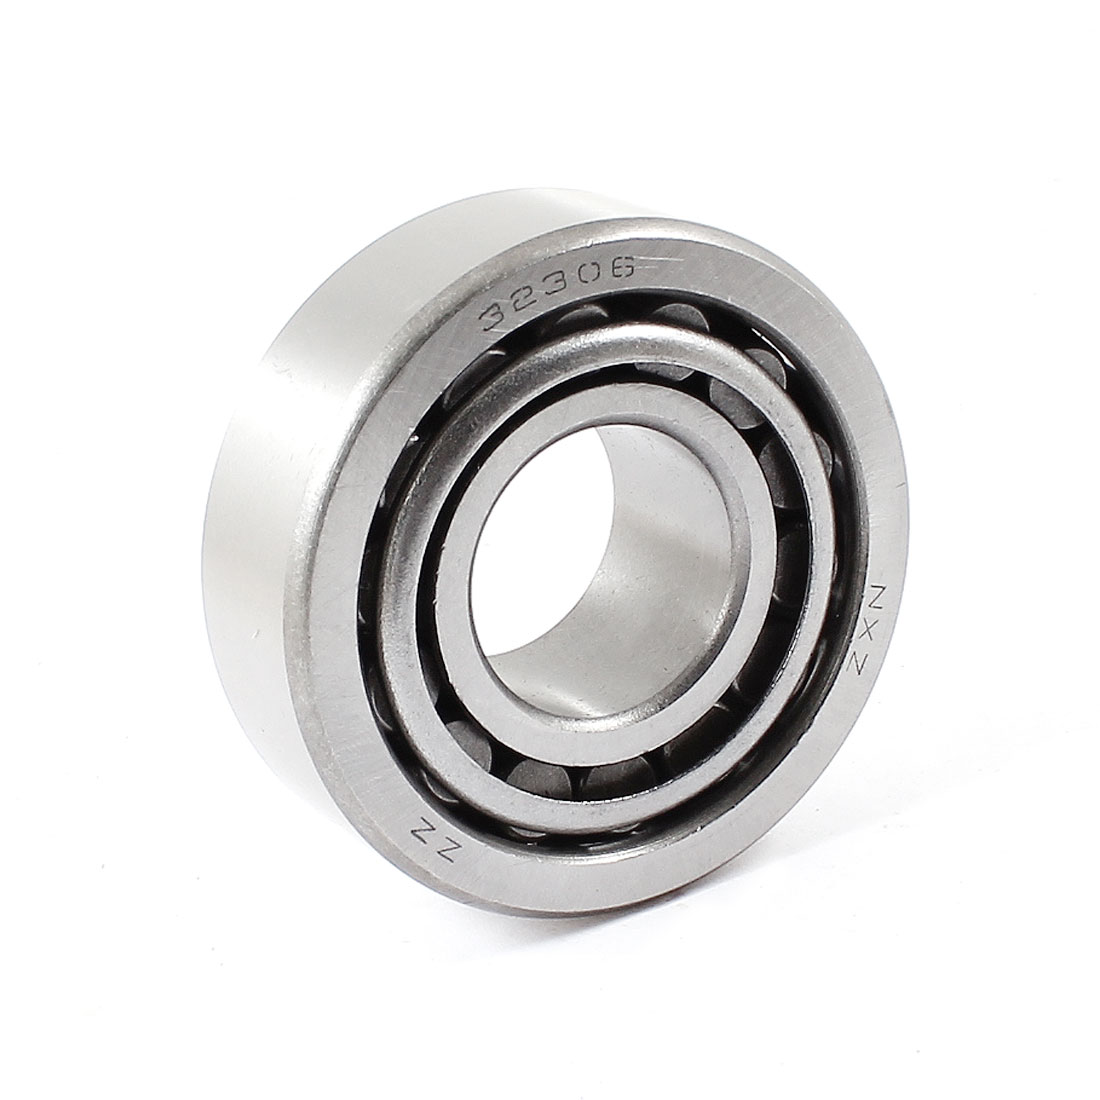 32306 Steering Head Set Tapered Roller Bearings 30mm x 72mm x 29mm